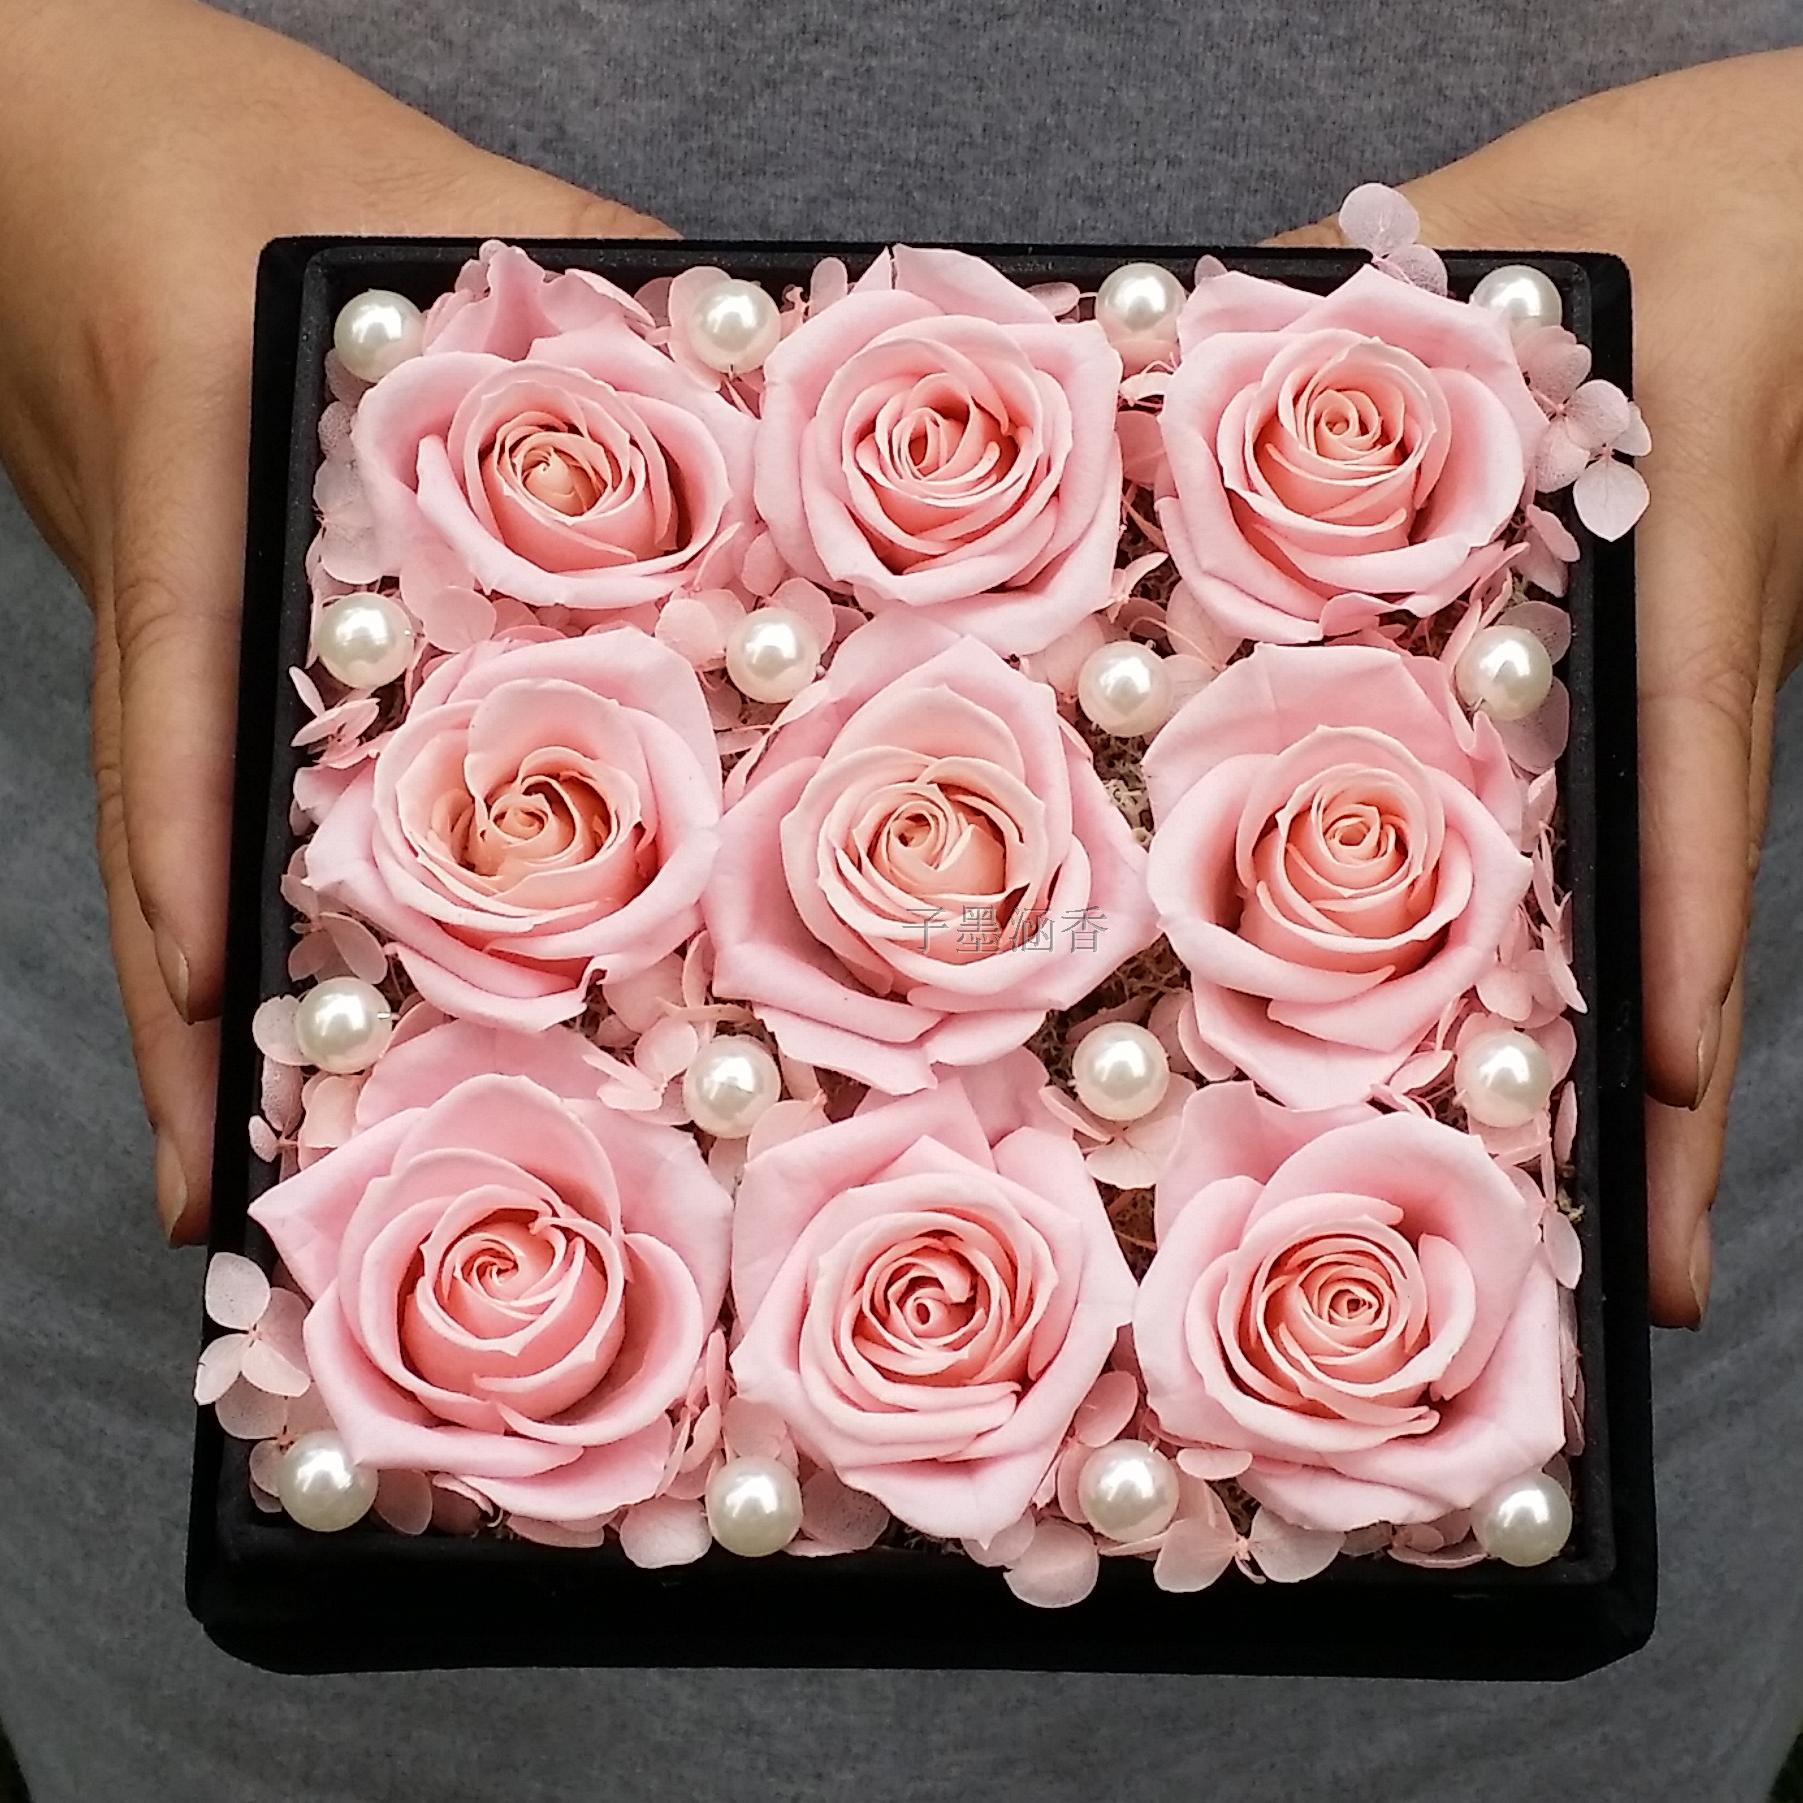 9 Pink Roses Flower Boxes Preserved Preservation Imports Rose Gift Birthday Courtship Free Shipping